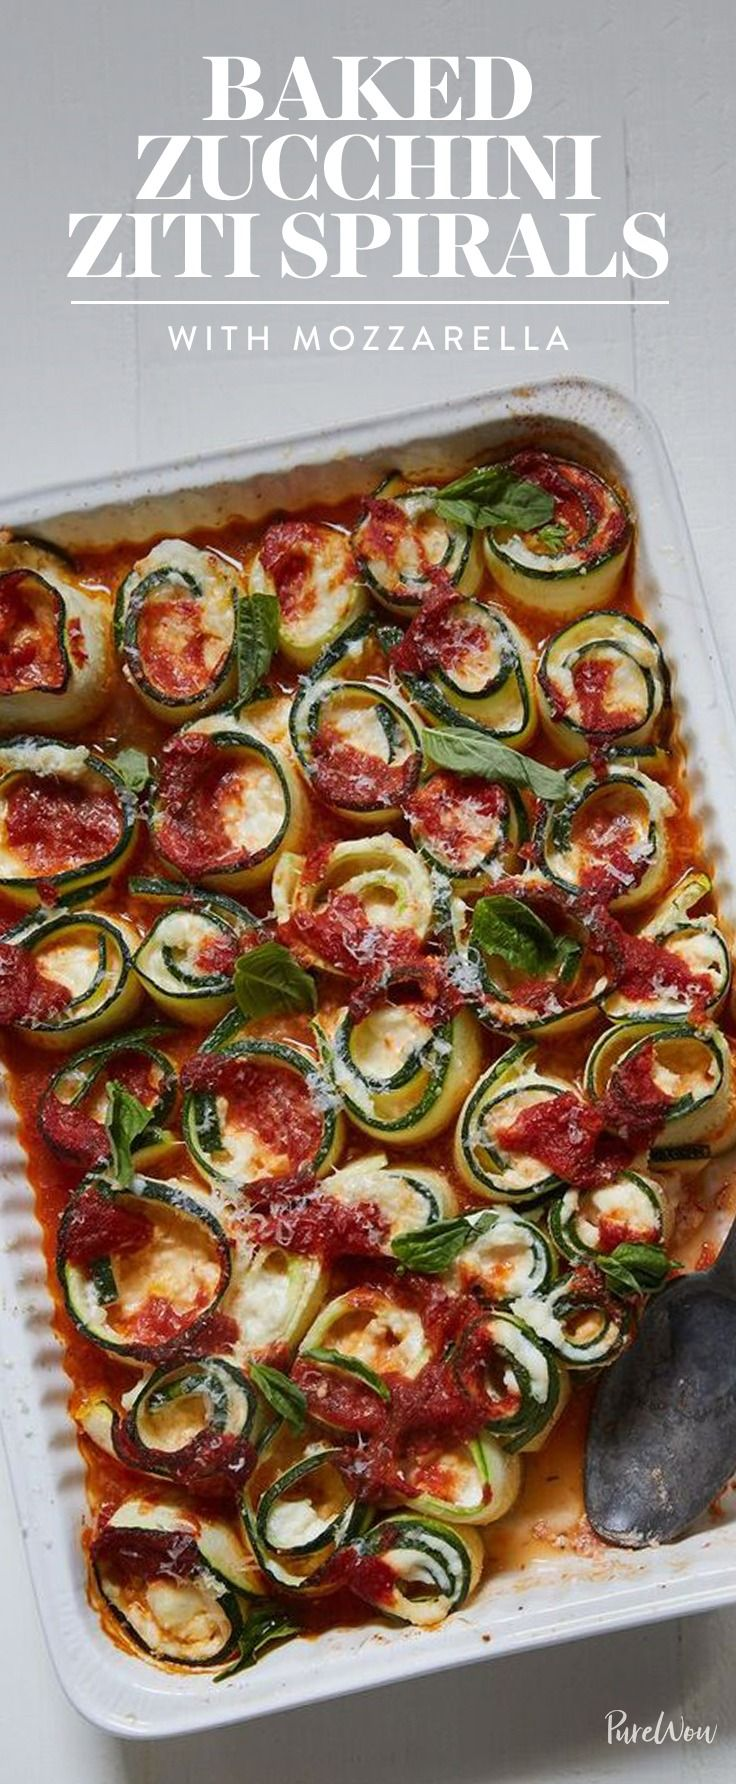 """This lightened-up zucchini baked """"ziti"""" has all the cheesiness but none of the carbs. Total win-win. Make it this week."""